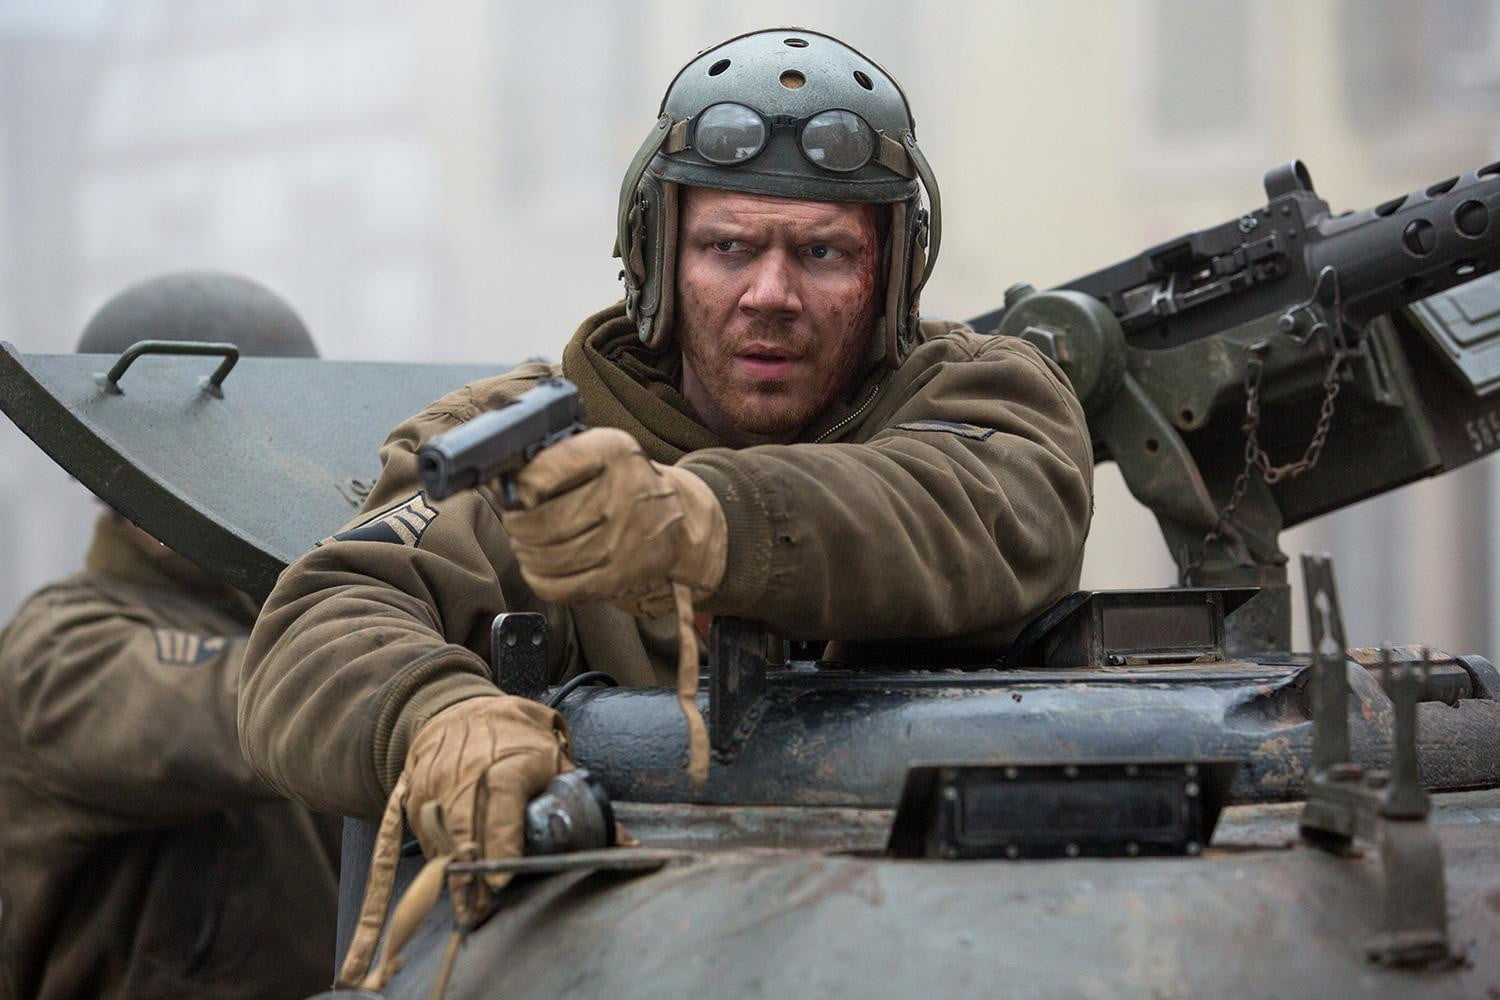 Images Of The Movie Fury: Digital Trends